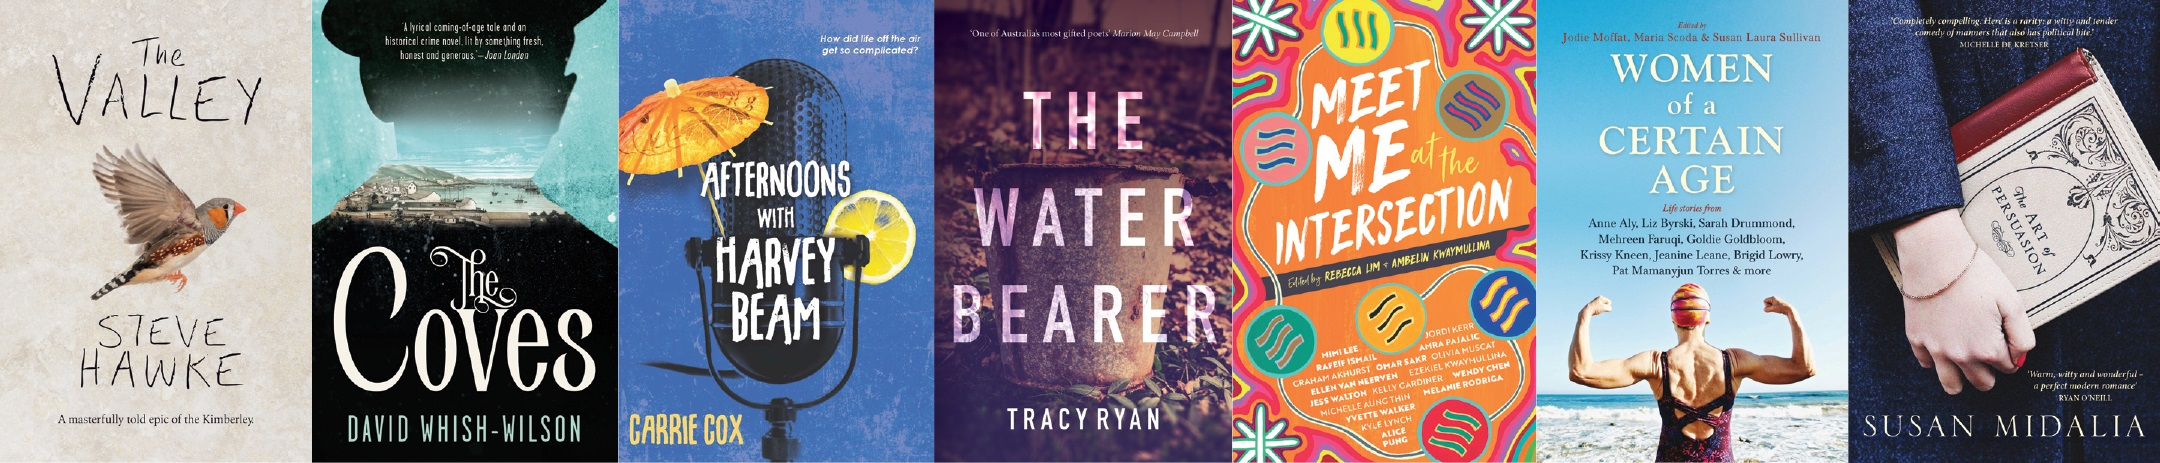 Our Tea Party Book Club Reads: The Valley, The Coves, Afternoons with Harvey Beam, The Water Bearer, Meet Me at the Intersection, Women of a Certain Age, and The Art of Persuasion